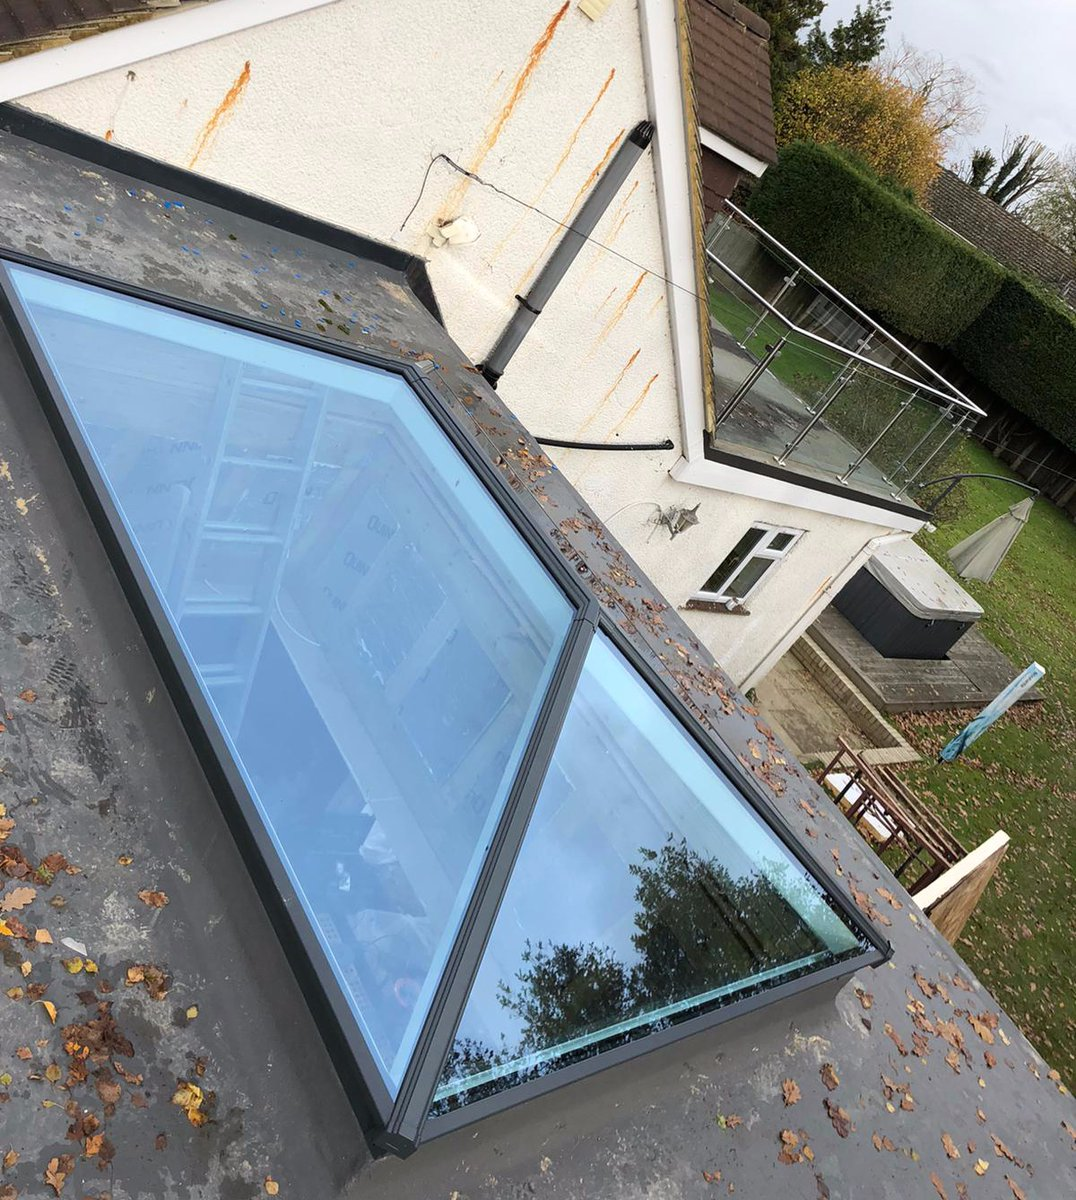 Express Skylights On Twitter Installation Finished Ready For Christmas Celebration In This New Extension Flooded With Natural Light Thanks To The Korniche Lantern Korniche Skylights Lantern Christmasready Https T Co P3dlzteie1